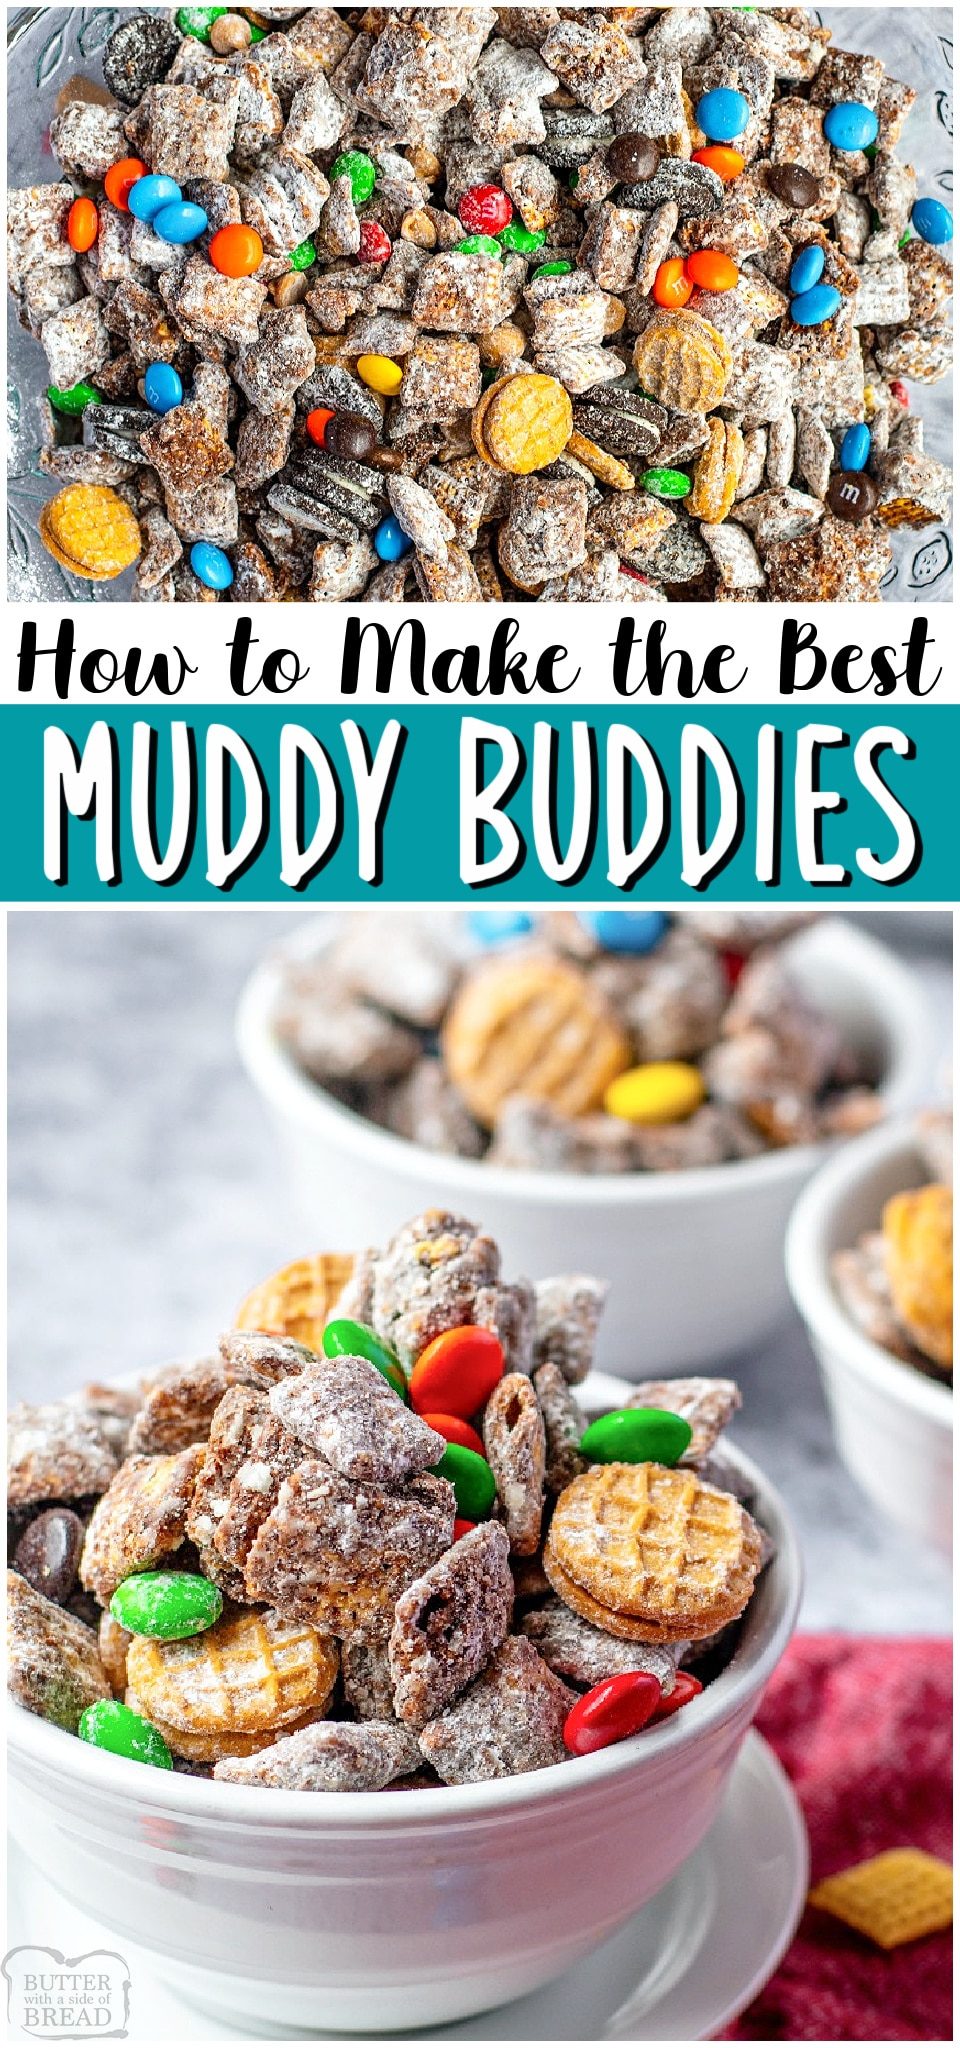 Come learn How to Make Muddy Buddies! Classic Chex cereal treat with delicious add-ins for a fun & tasty dessert snack mix that everyone loves! #muddybuddies #chexmix #dessert #snackmix #chex #easyrecipe from BUTTER WITH A SIDE OF BREAD